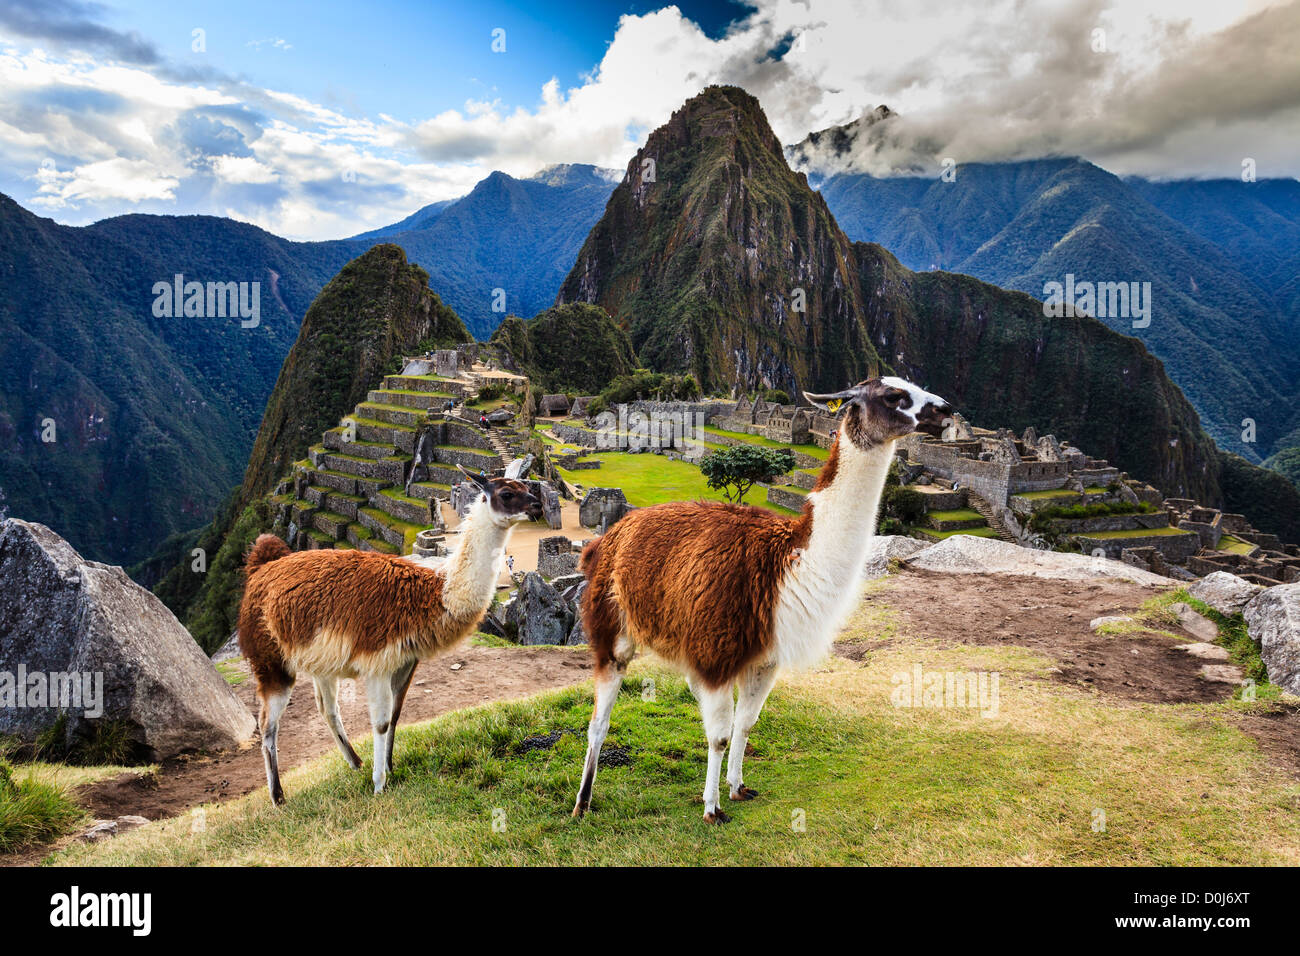 Llamas in Machu Picchu Archeological Site, Cuzco Province, Peru - Stock Image